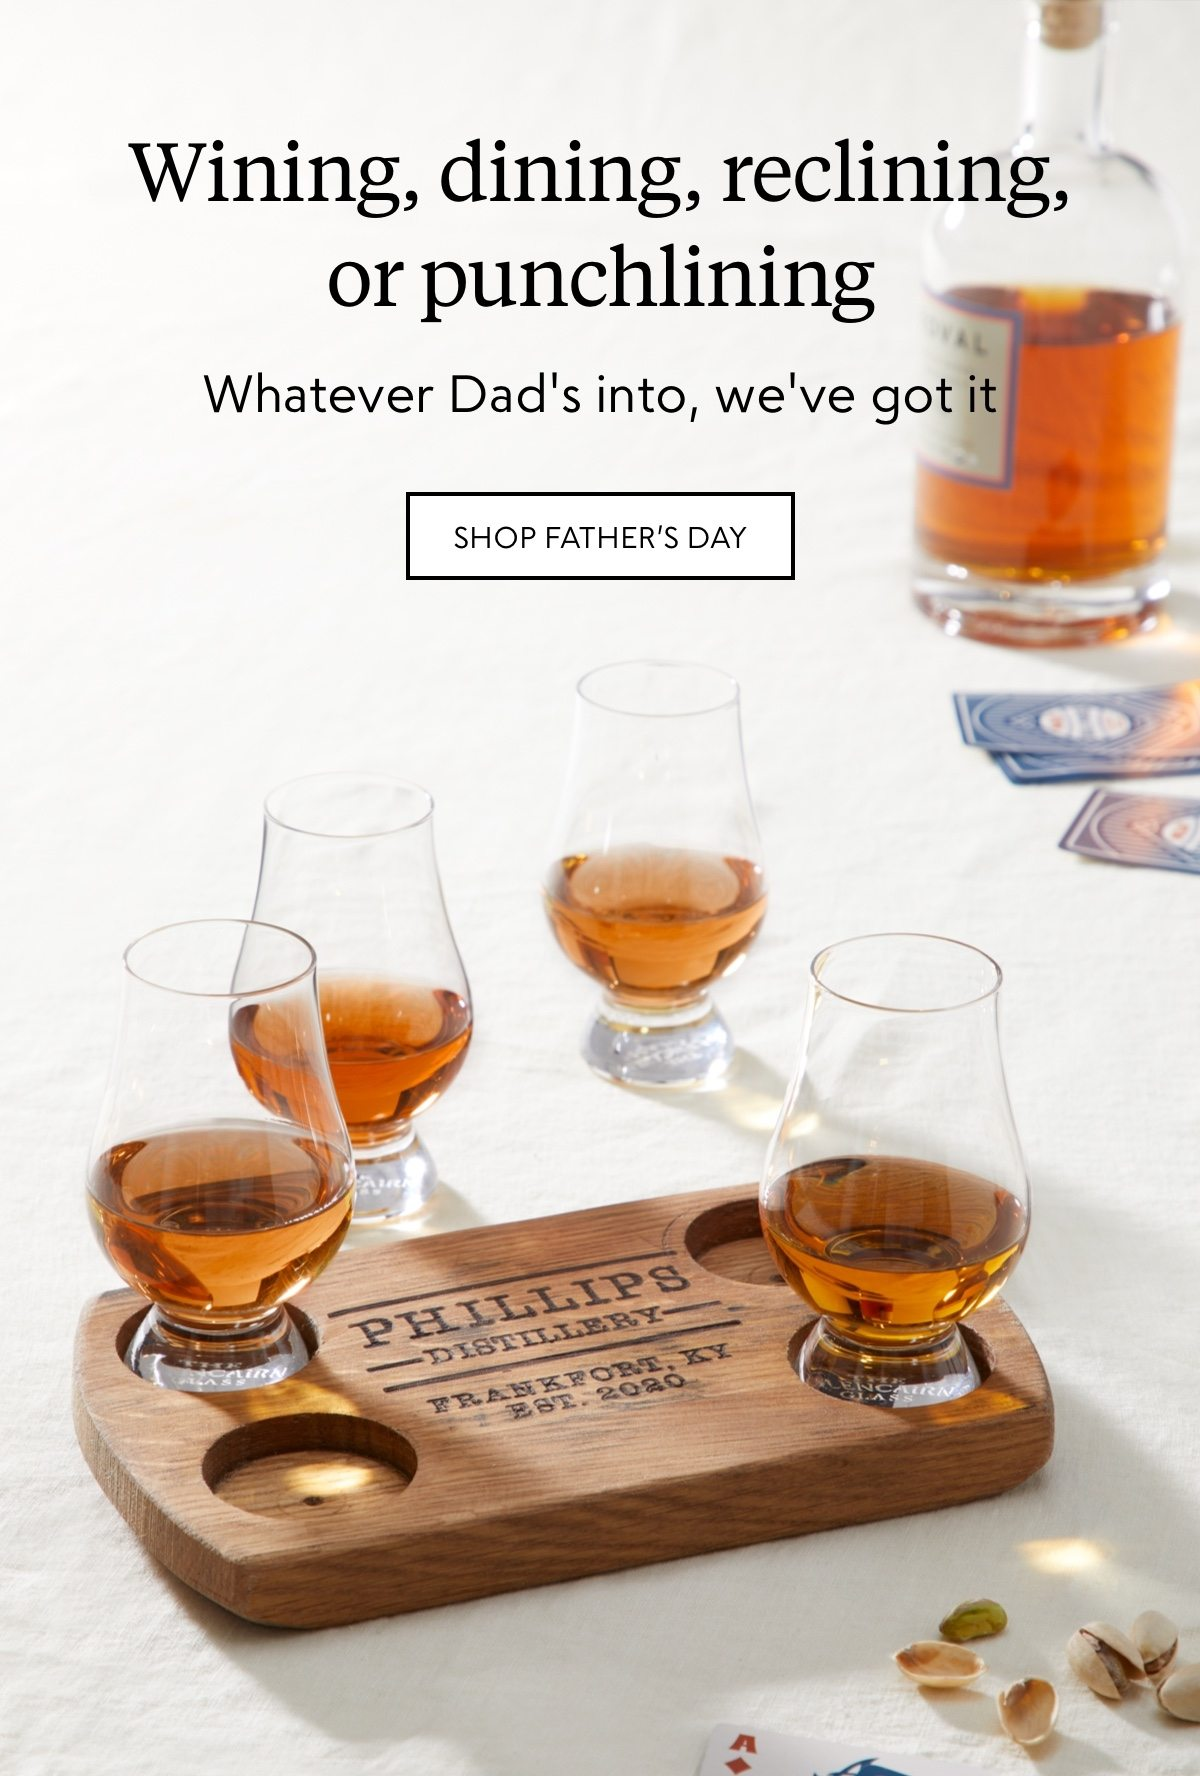 Wining, dining, reclining, or punchlining--whatever Dad's into, we've got it. Shop Father's Day